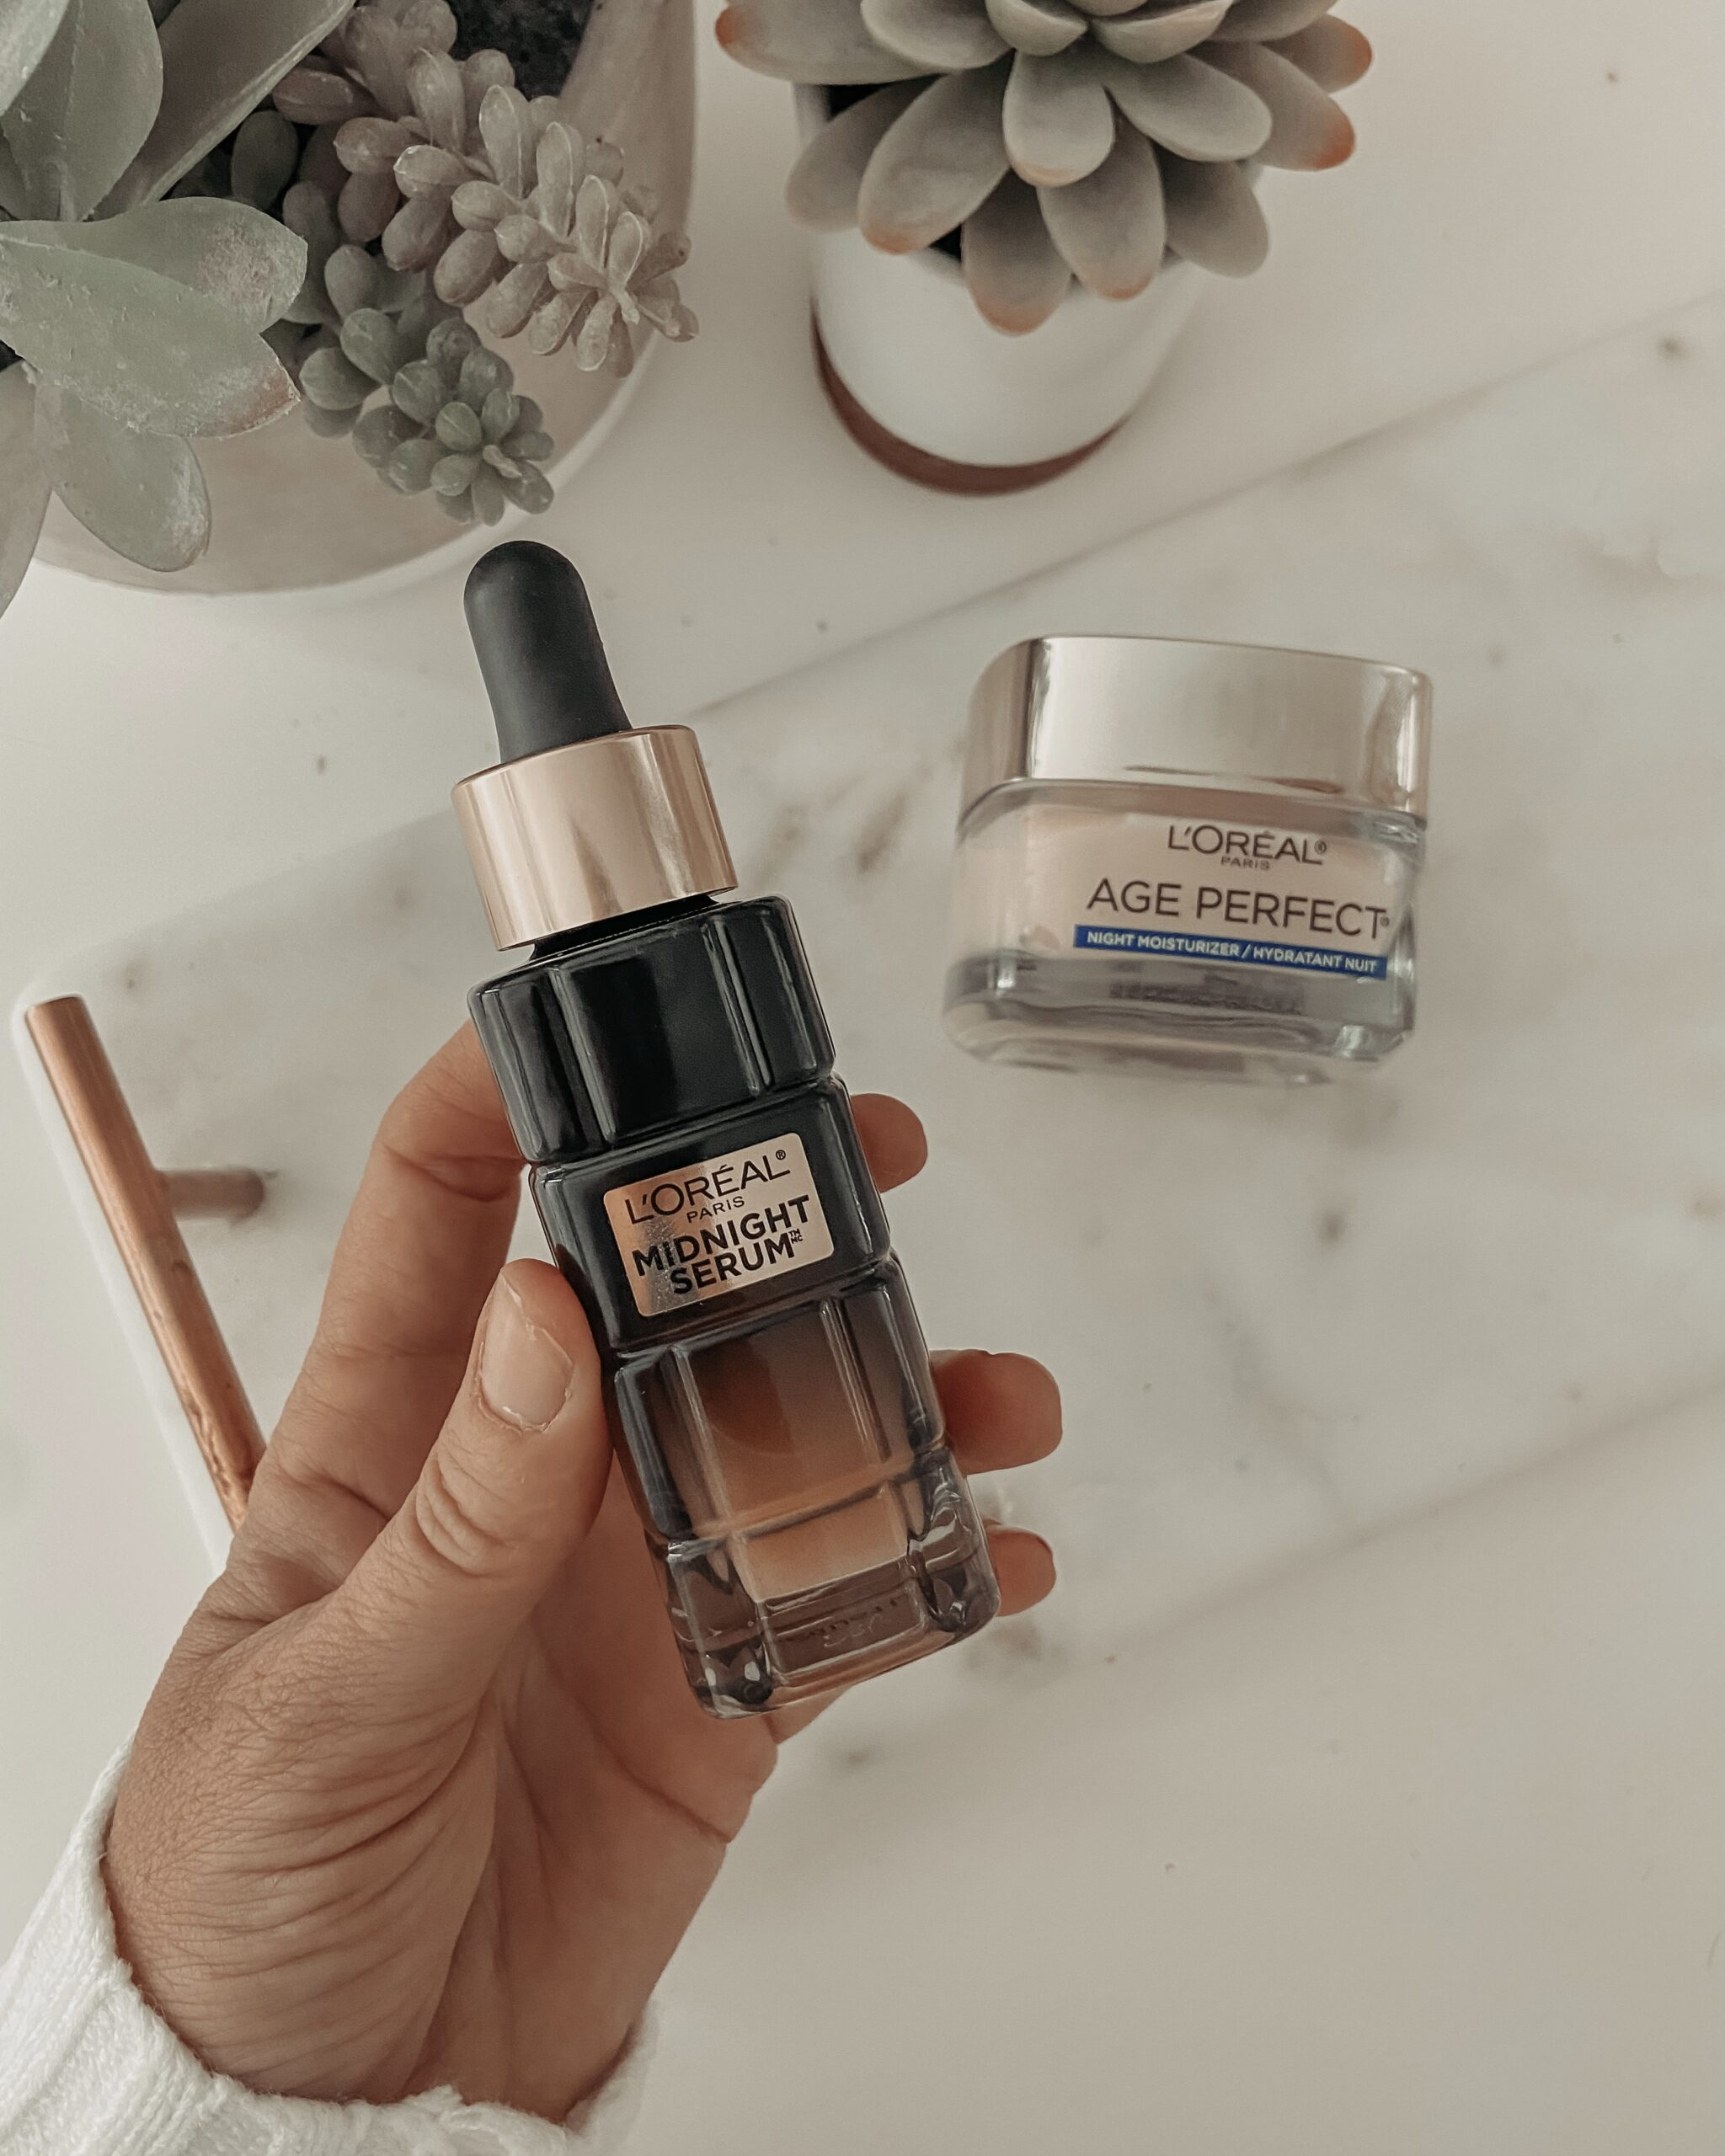 LOREAL MIDNIGHT SERUM: Jaclyn De Leon Style- Sharing the new serum that I added to my nighttime skincare routine and why it has transformed my skin